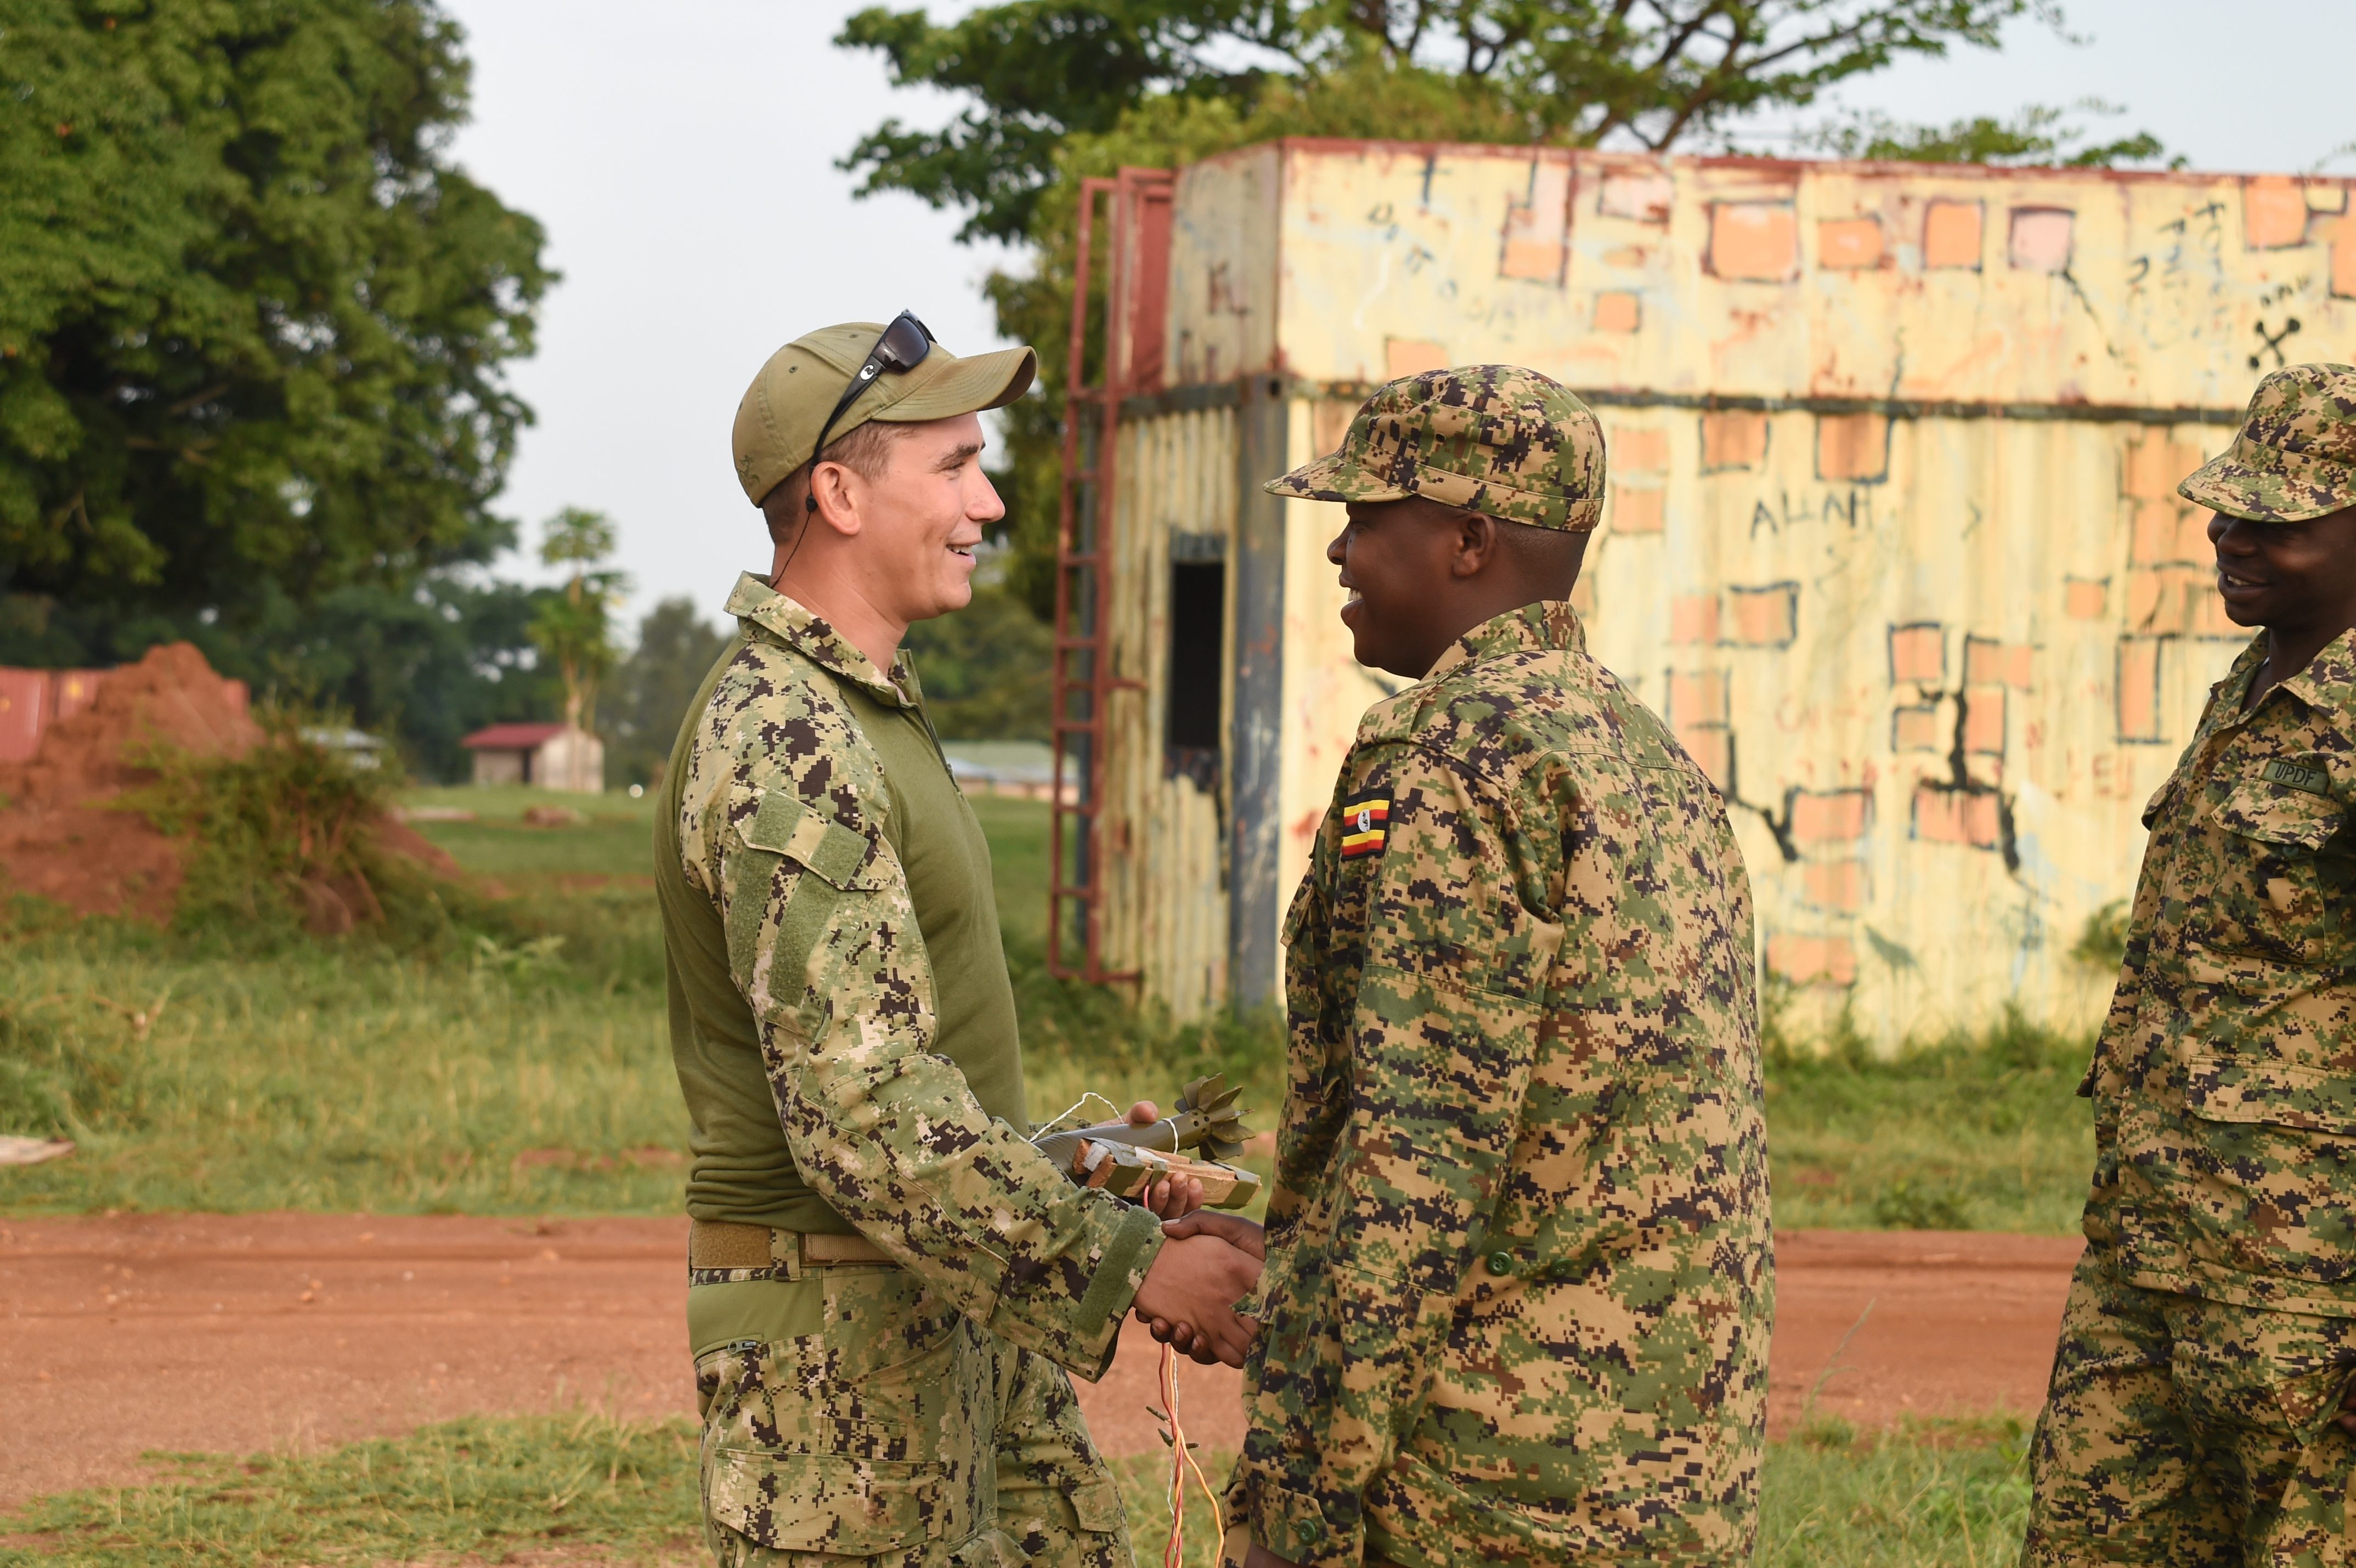 U.S. Navy Explosive Ordnance Disposal Technician 1st Class Dan Steinchen, Combined Joint Task Force-Horn of Africa, Task Force Sparta, EOD Mobile Unit 8, greets a Uganda People's Defense Force (UPDF) member before counter-IED training at Camp Singo, Uganda, March 6, 2017.  The training gave UPDF members a chance to locate and clear IEDs in and around buildings and along the road. (U.S. Air National Guard photo by Staff Sgt. Penny Snoozy)